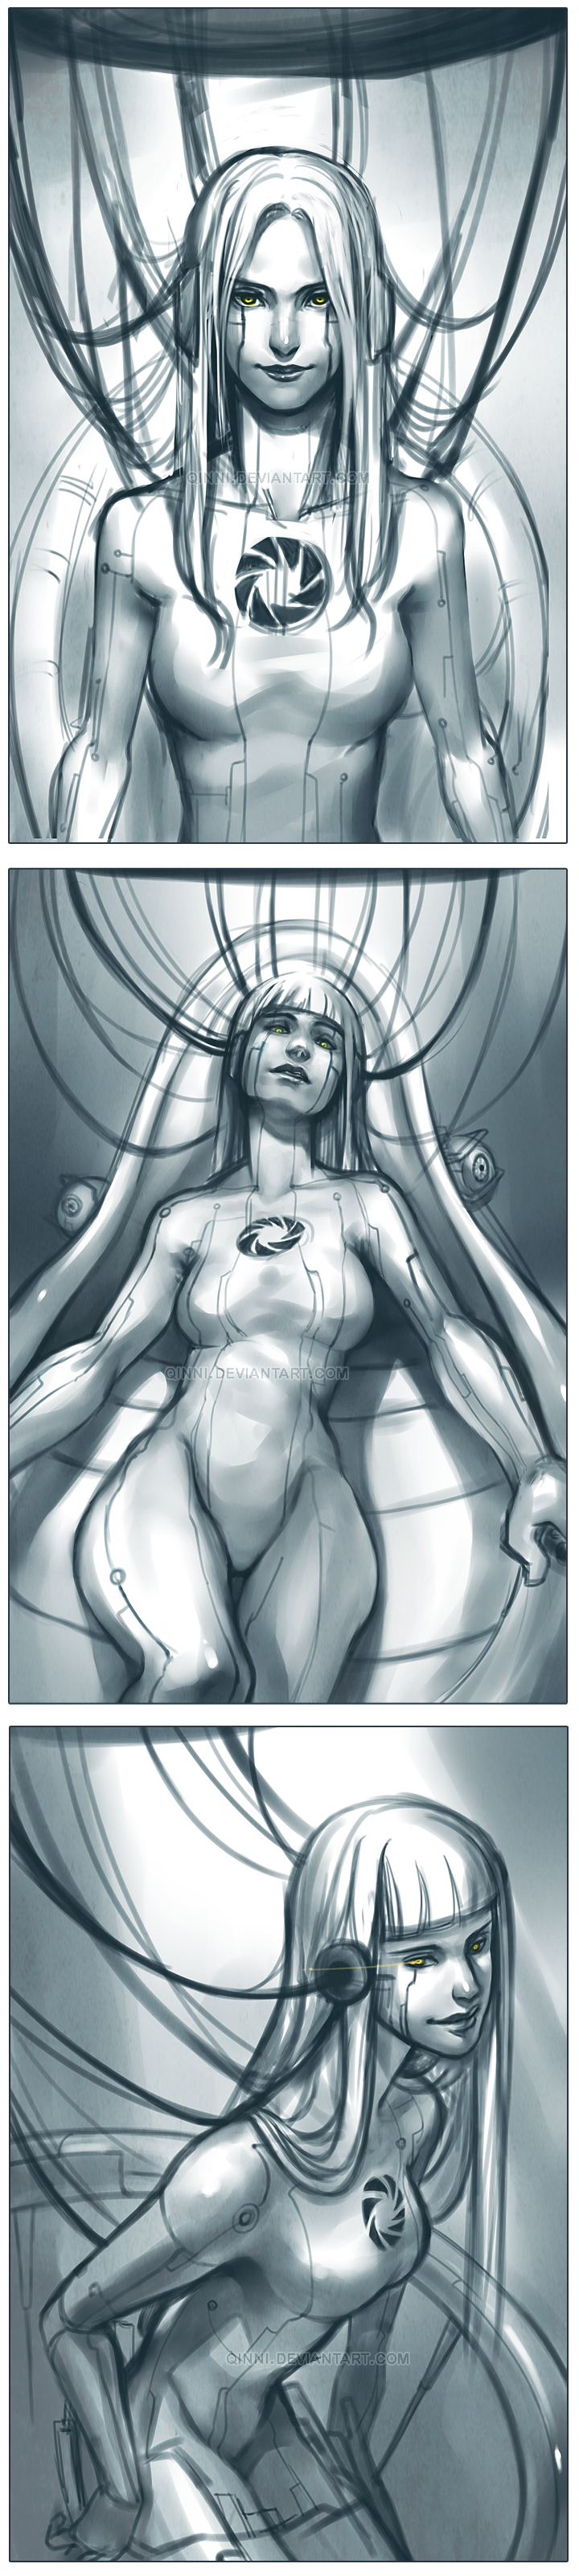 GLaDOS - sketch by Qinni